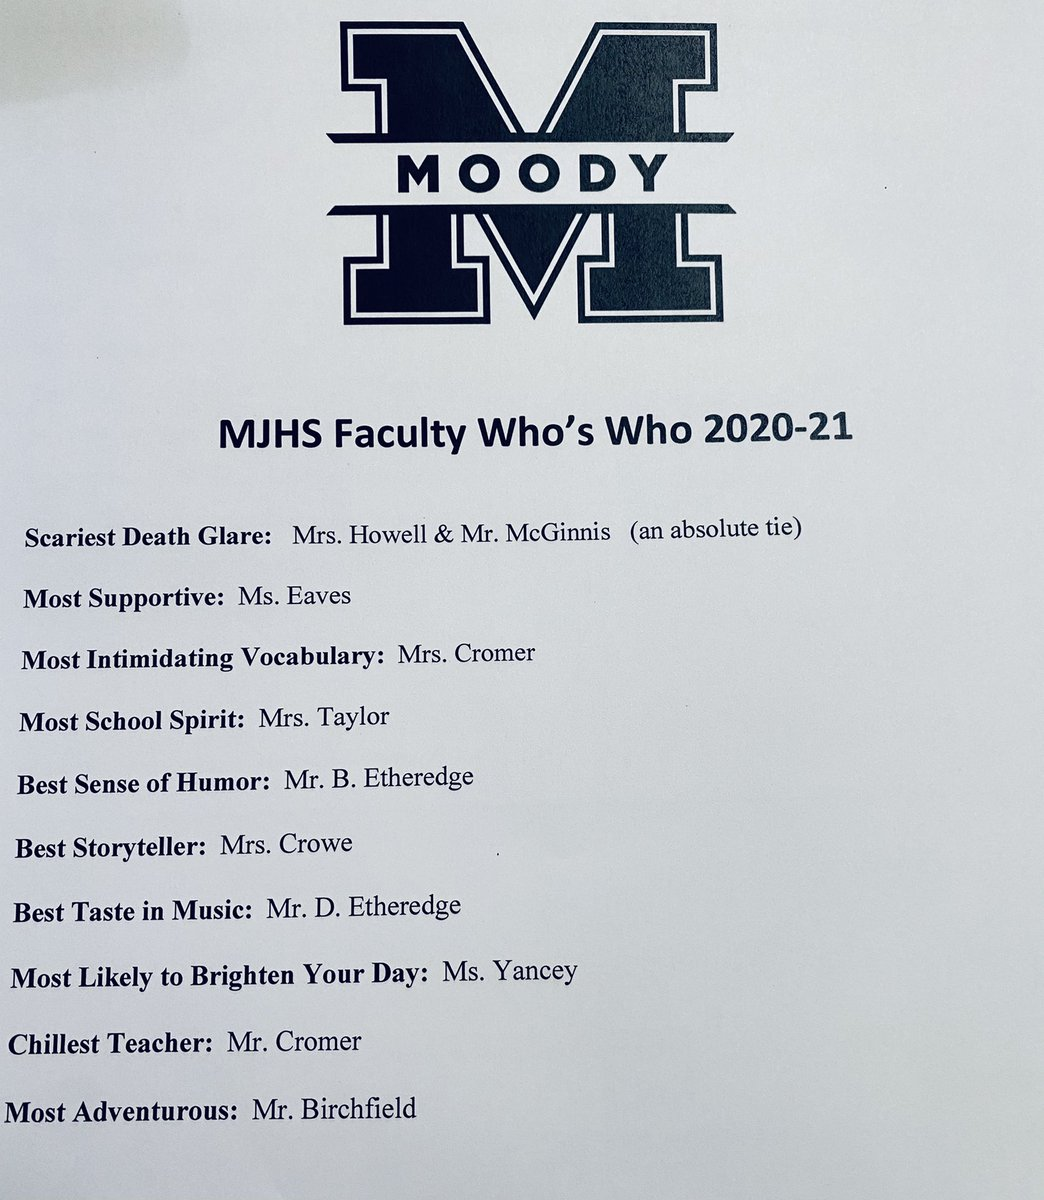 RT @MoodyJrHigh: MJHS students wanted a faculty who's who this year.... 💙Ⓜ️💙 #MJHSstrong @stclairsuper @sccboe